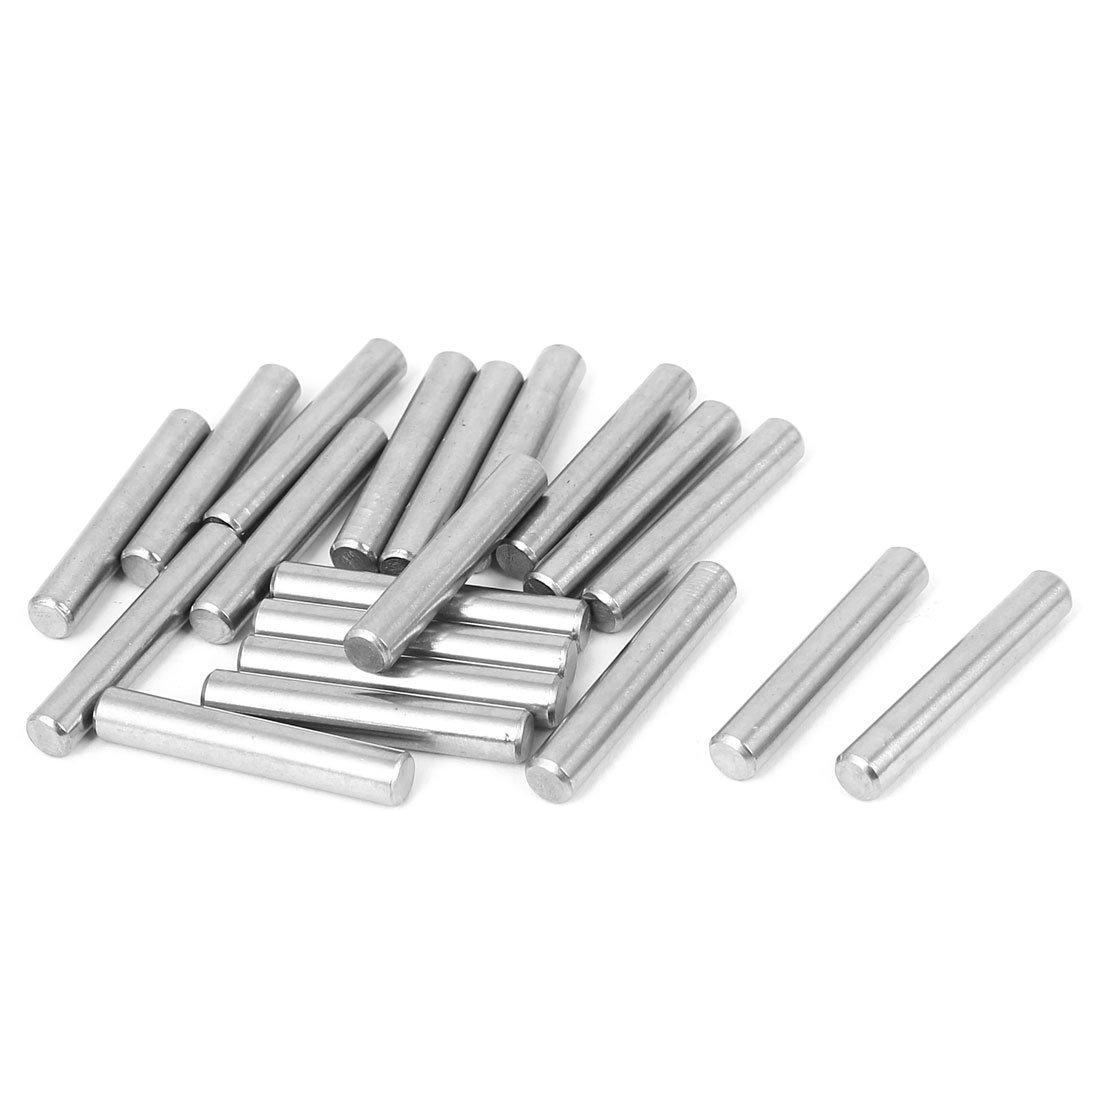 sourcingmap M5x30mm Stainless Steel Parallel Dowel Pins Fastener Elements 20pcs a16030800ux1634